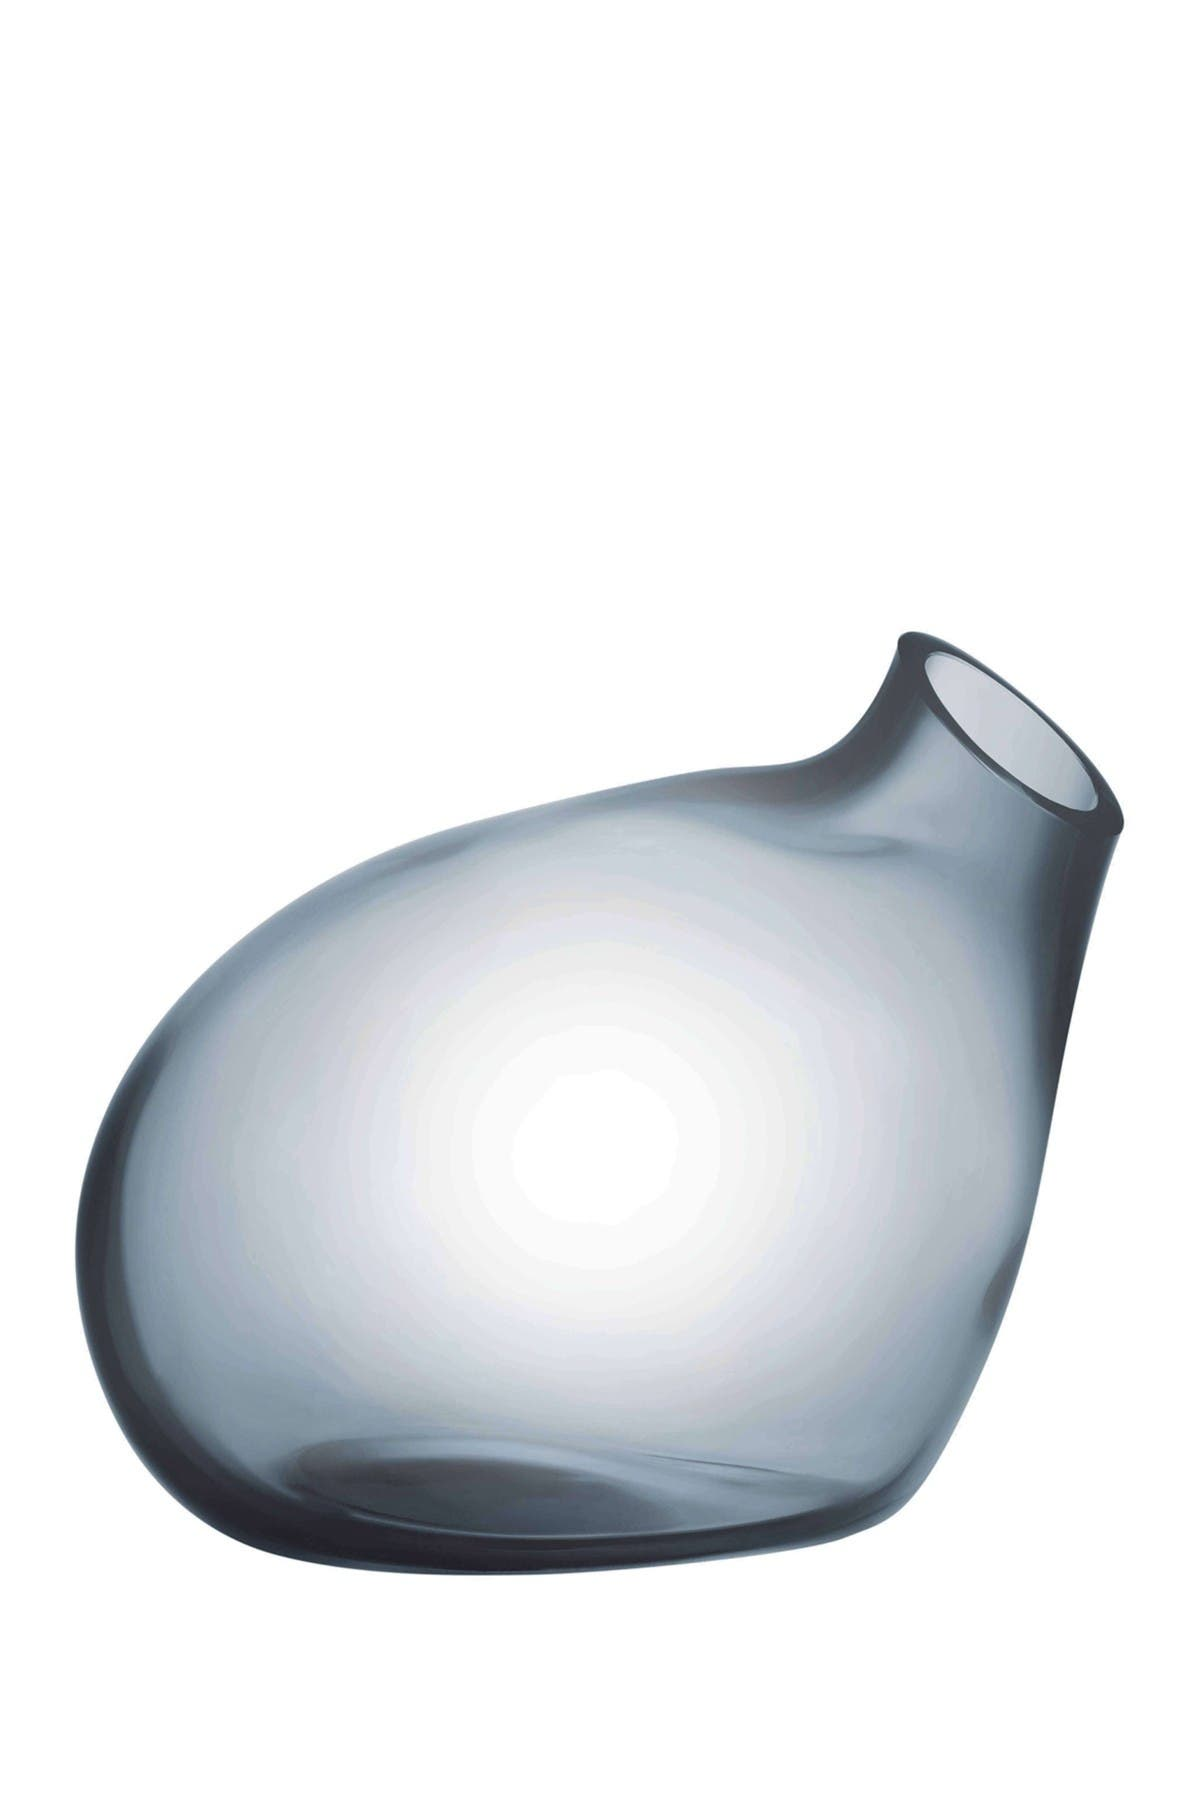 Image of Nude Glass Bubble Vase - Small - Soft Blue